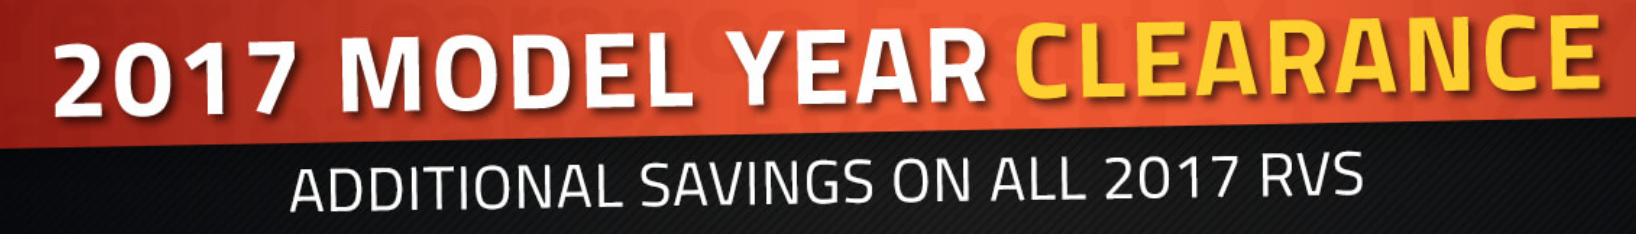 2017 Model Year Clearance